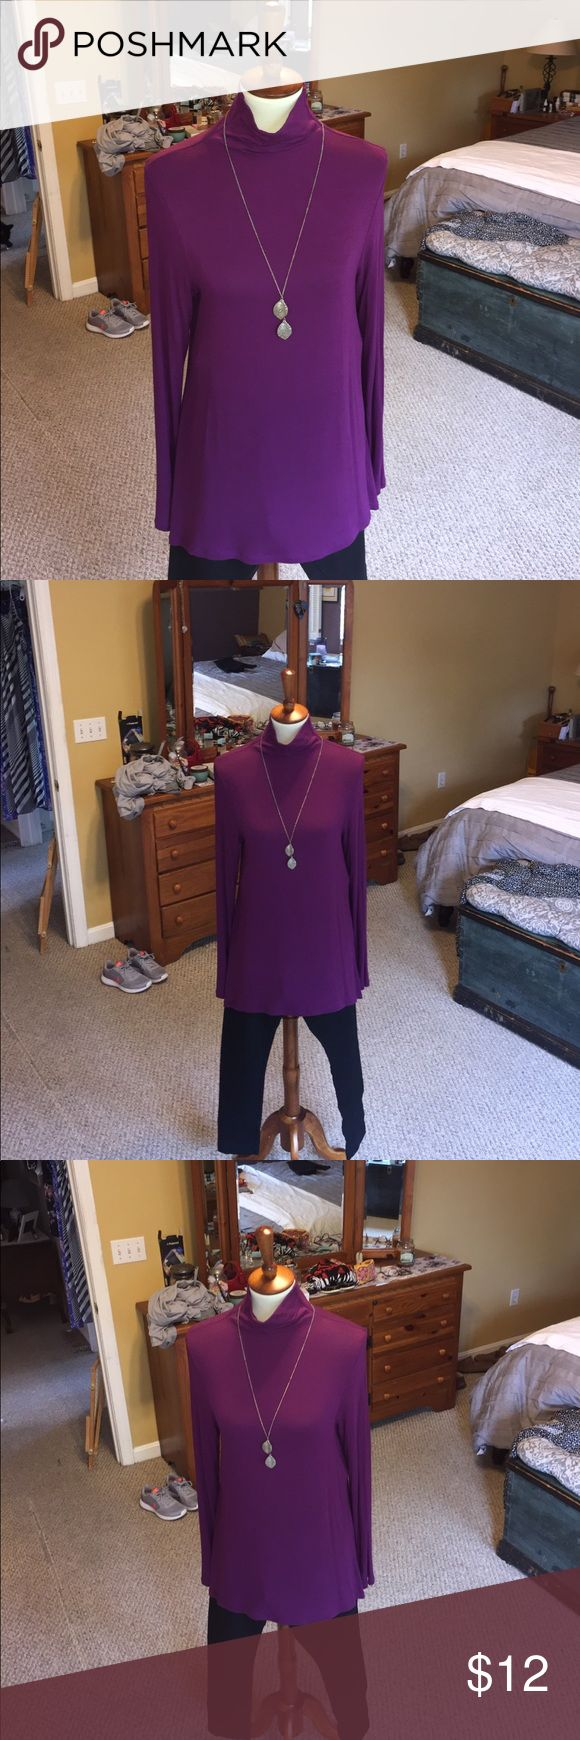 Inc purple turtle neck long sleeve tunic. Inc purple turtle neck long sleeve tunic. Points at hip, see last photo.  95% Rayon, 5 % spandex. Stretchy and super soft. No pulls or imperfections. INC International Concepts Tops Tunics